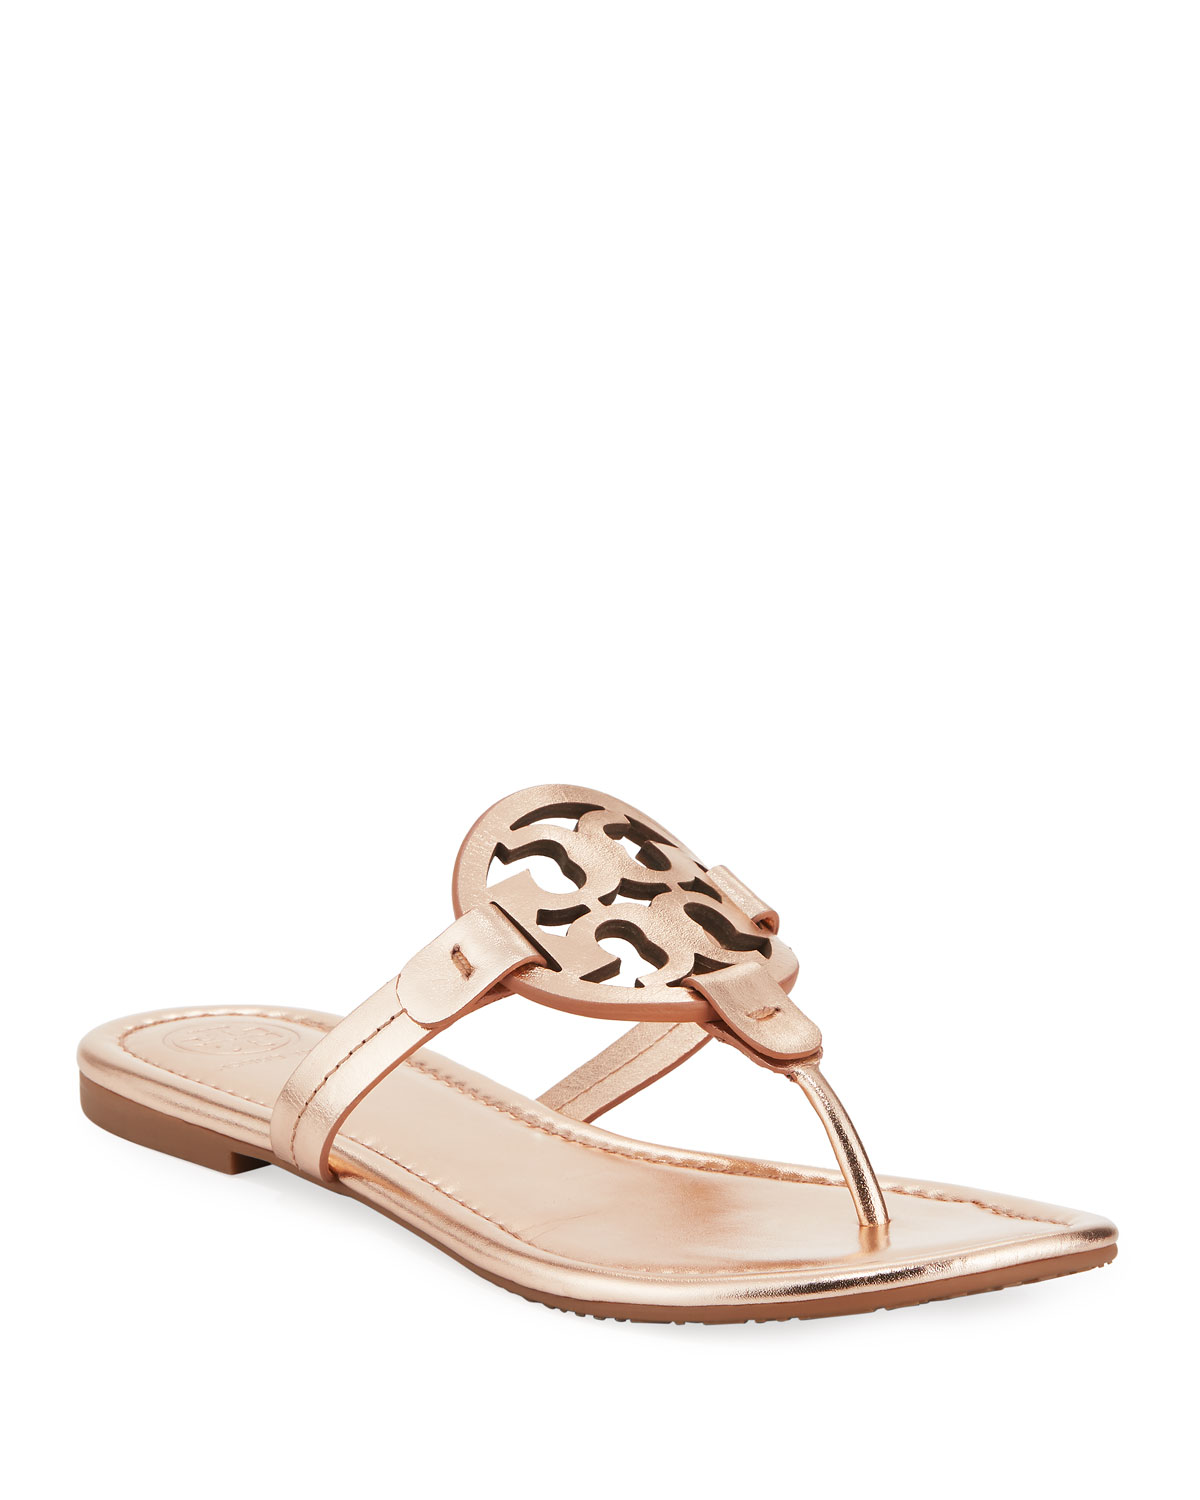 36da4a9477ca Tory Burch Miller Medallion Metallic Leather Flat Slide Sandal ...